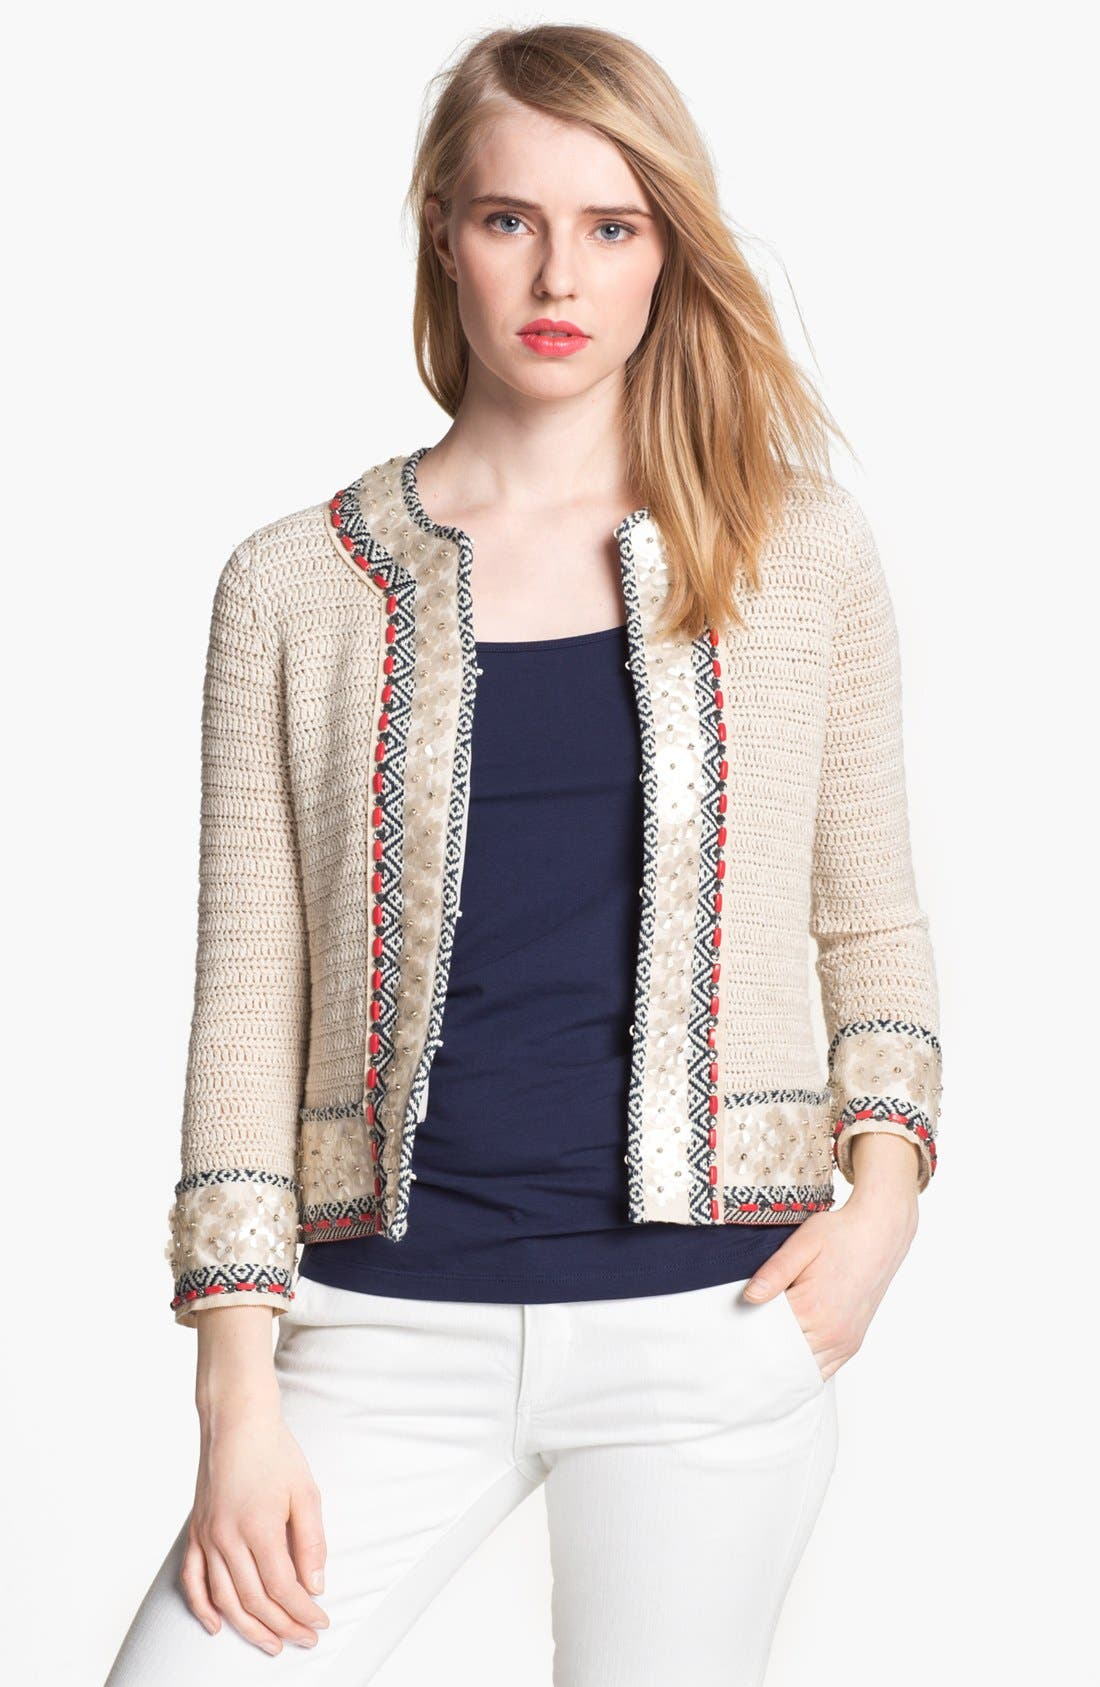 Alternate Image 1 Selected - Tory Burch 'Donovan' Embellished Jacket